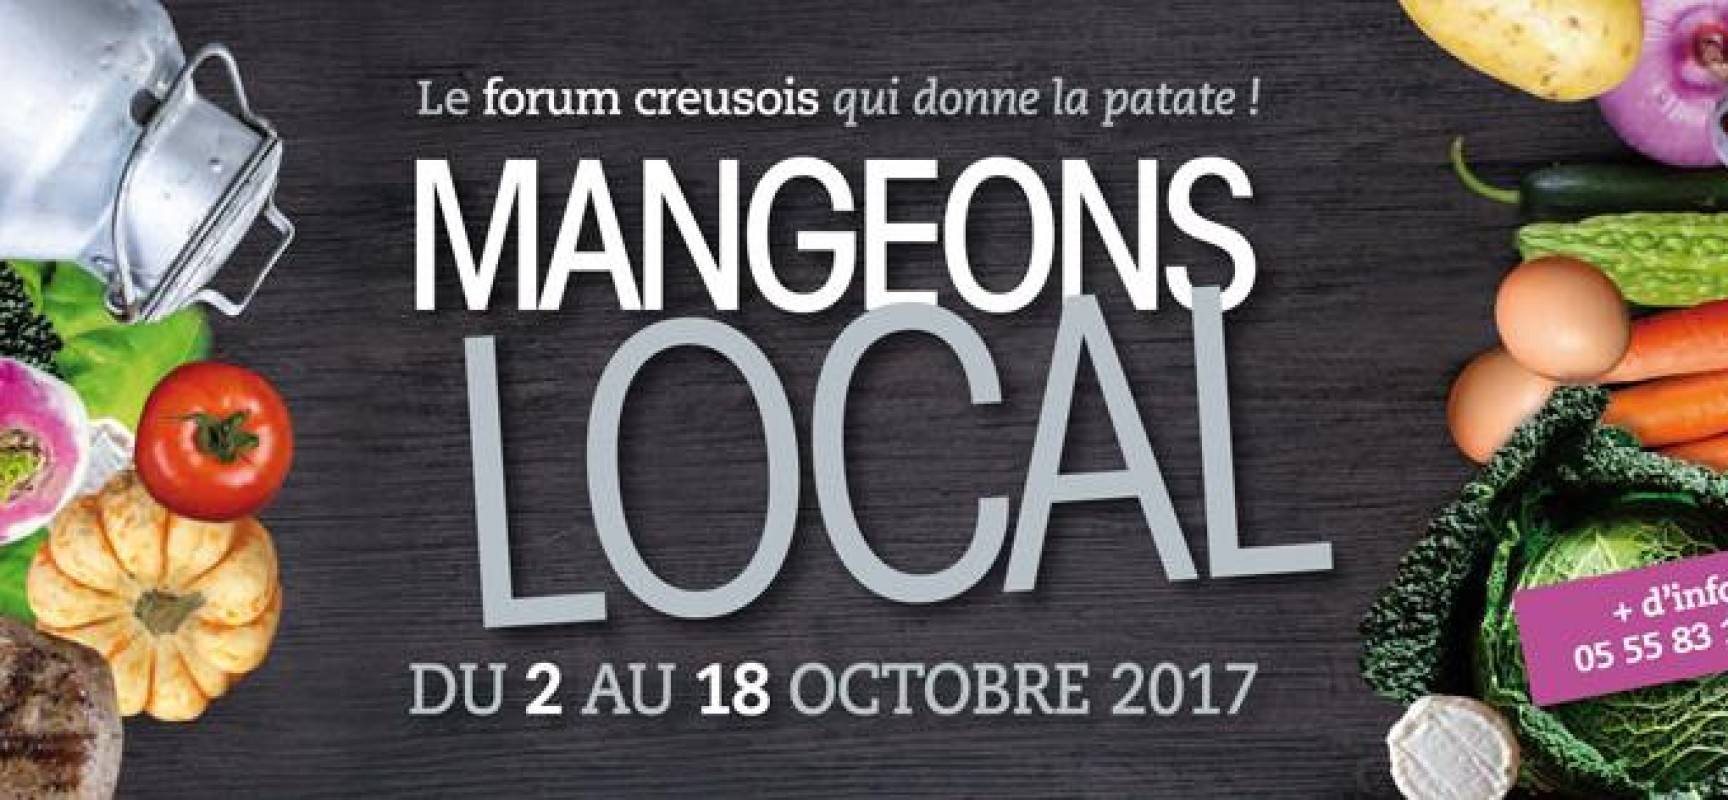 1er Forum de l'alimentation locale – « Mangeons local, le forum creusois qui donne la patate ! »